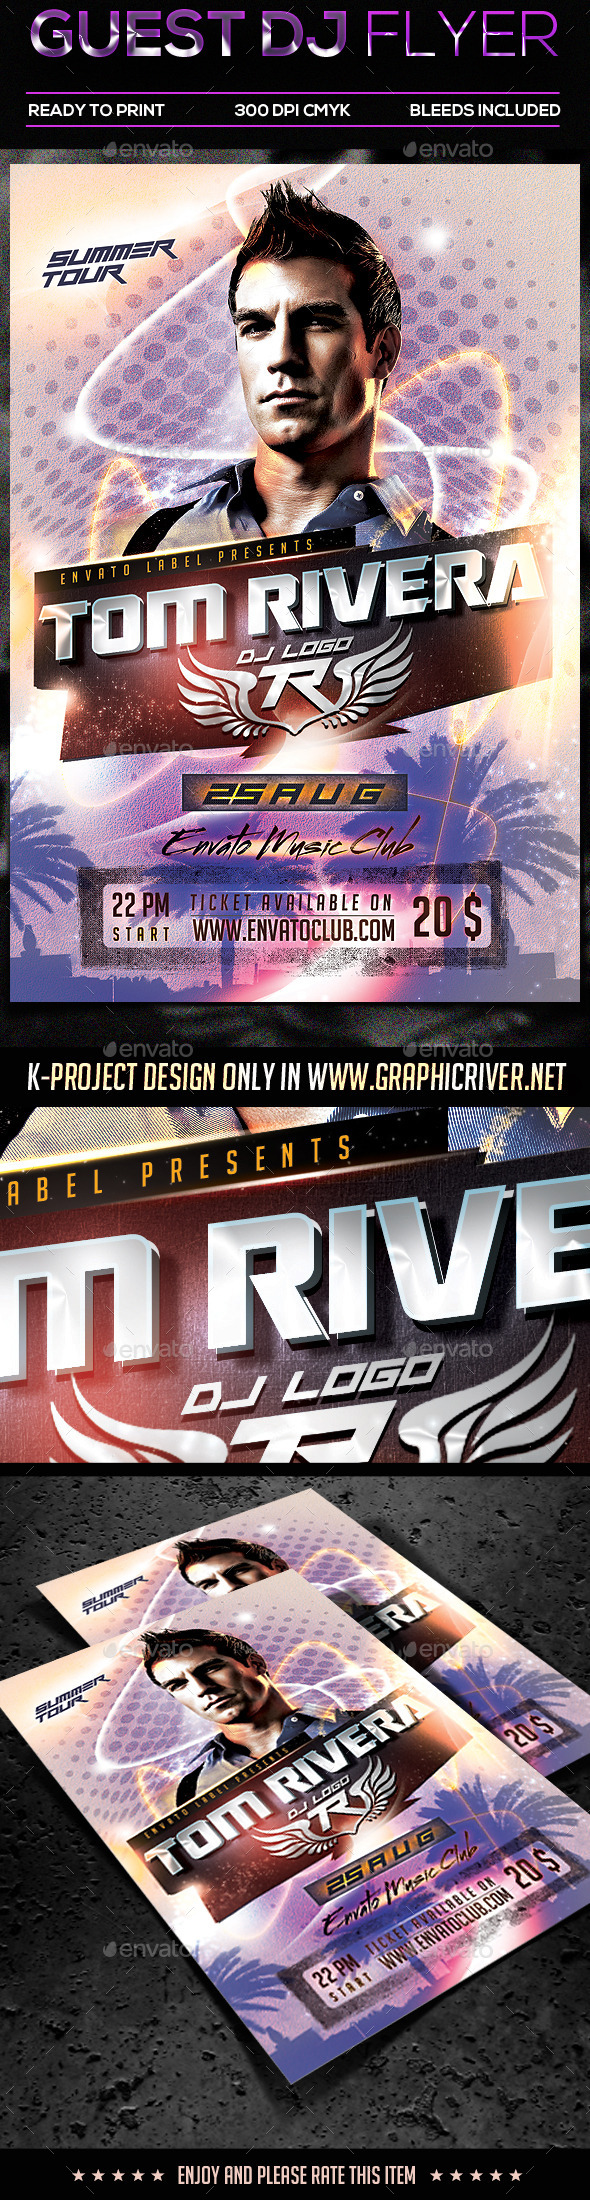 GraphicRiver Guest DJ Flyer 11074815